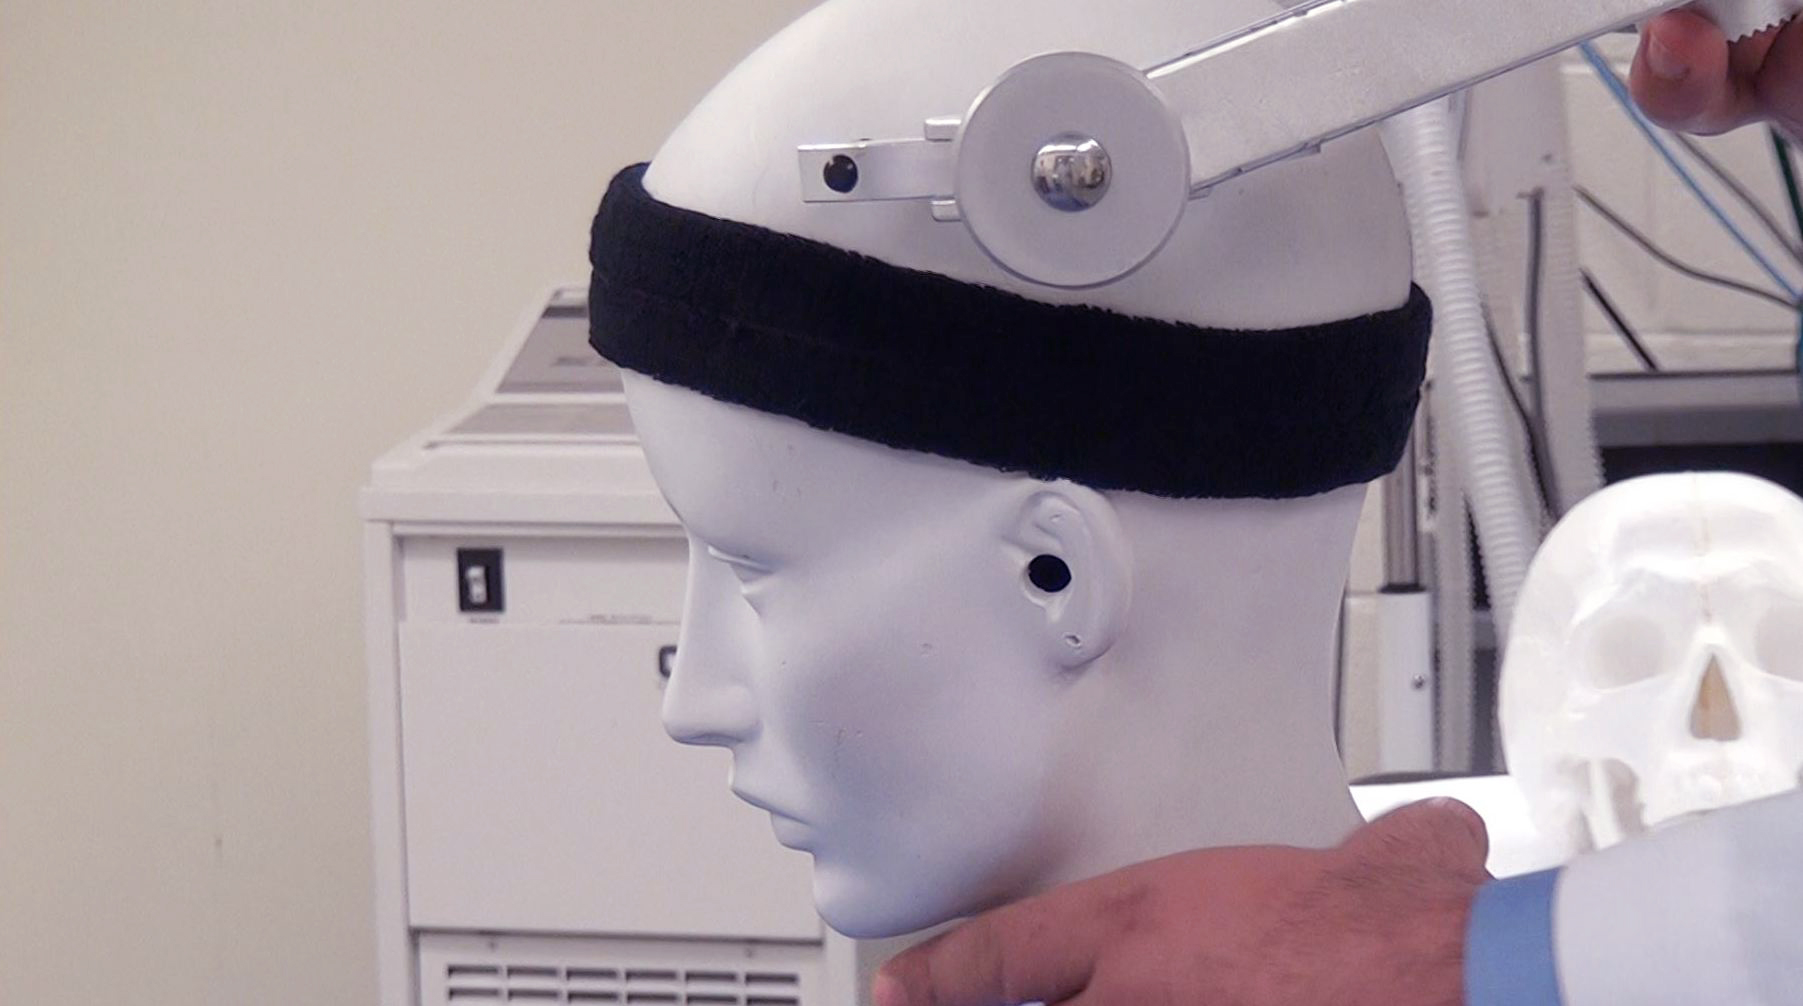 "Figure 18: The pins should be implanted on the ""sweat band"" zone around the head. Their placement outside of this zone, as seen in this image, risks fixation failure. Patients who are younger than 3 years of age should not be placed in pins and a cerebellar headrest is used. Children younger than 10 years of age should undergo head fixation using dedicated pediatric pins. Adult pins are used for patients older than 10 years. For further details, please refer to the chapter on  Skull Clamp Placement ."